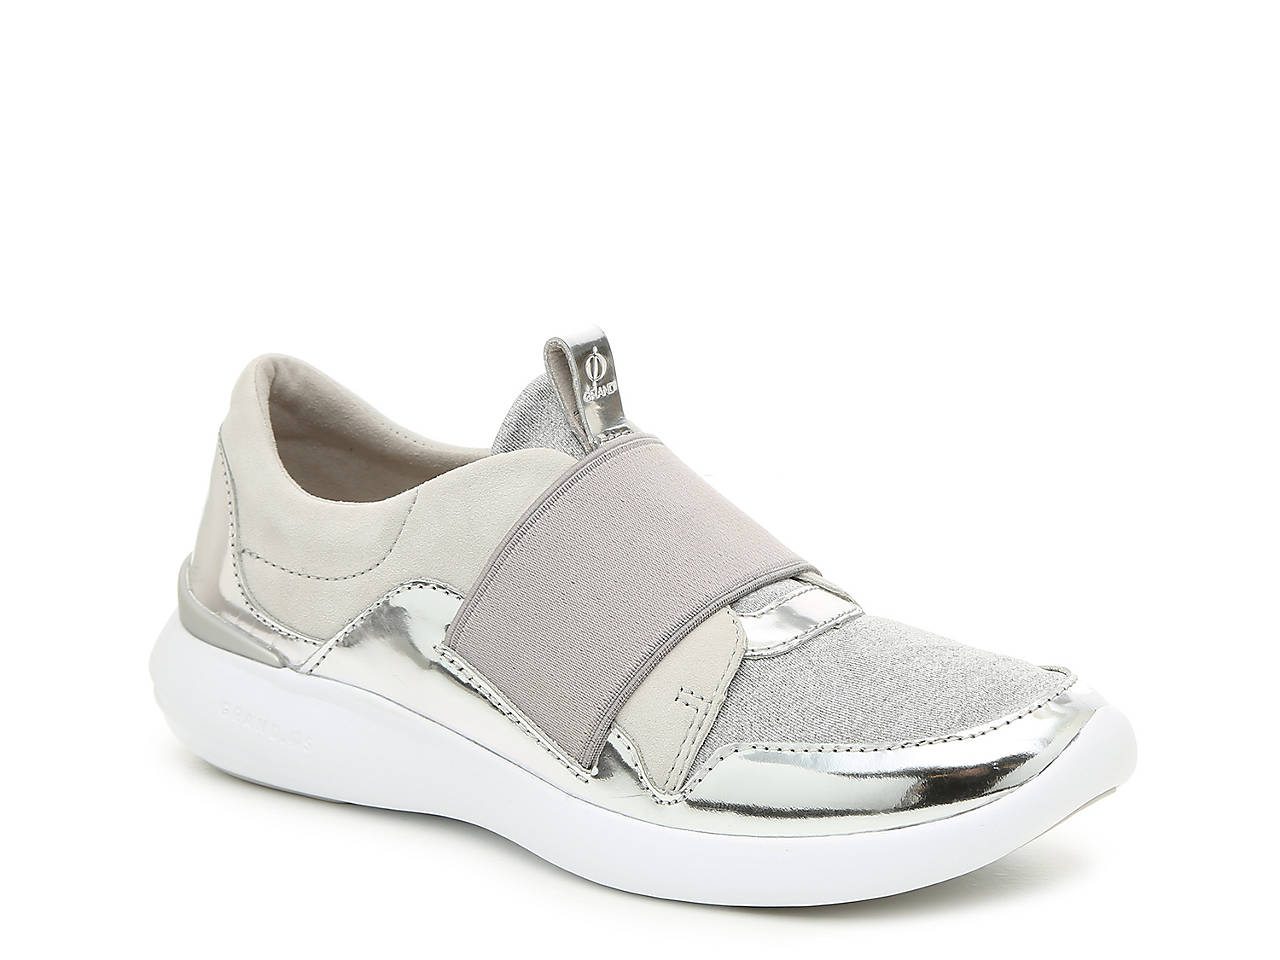 c147ae0af4db4 Cole Haan 2.0 Ella Slip-On Sneaker Women s Shoes